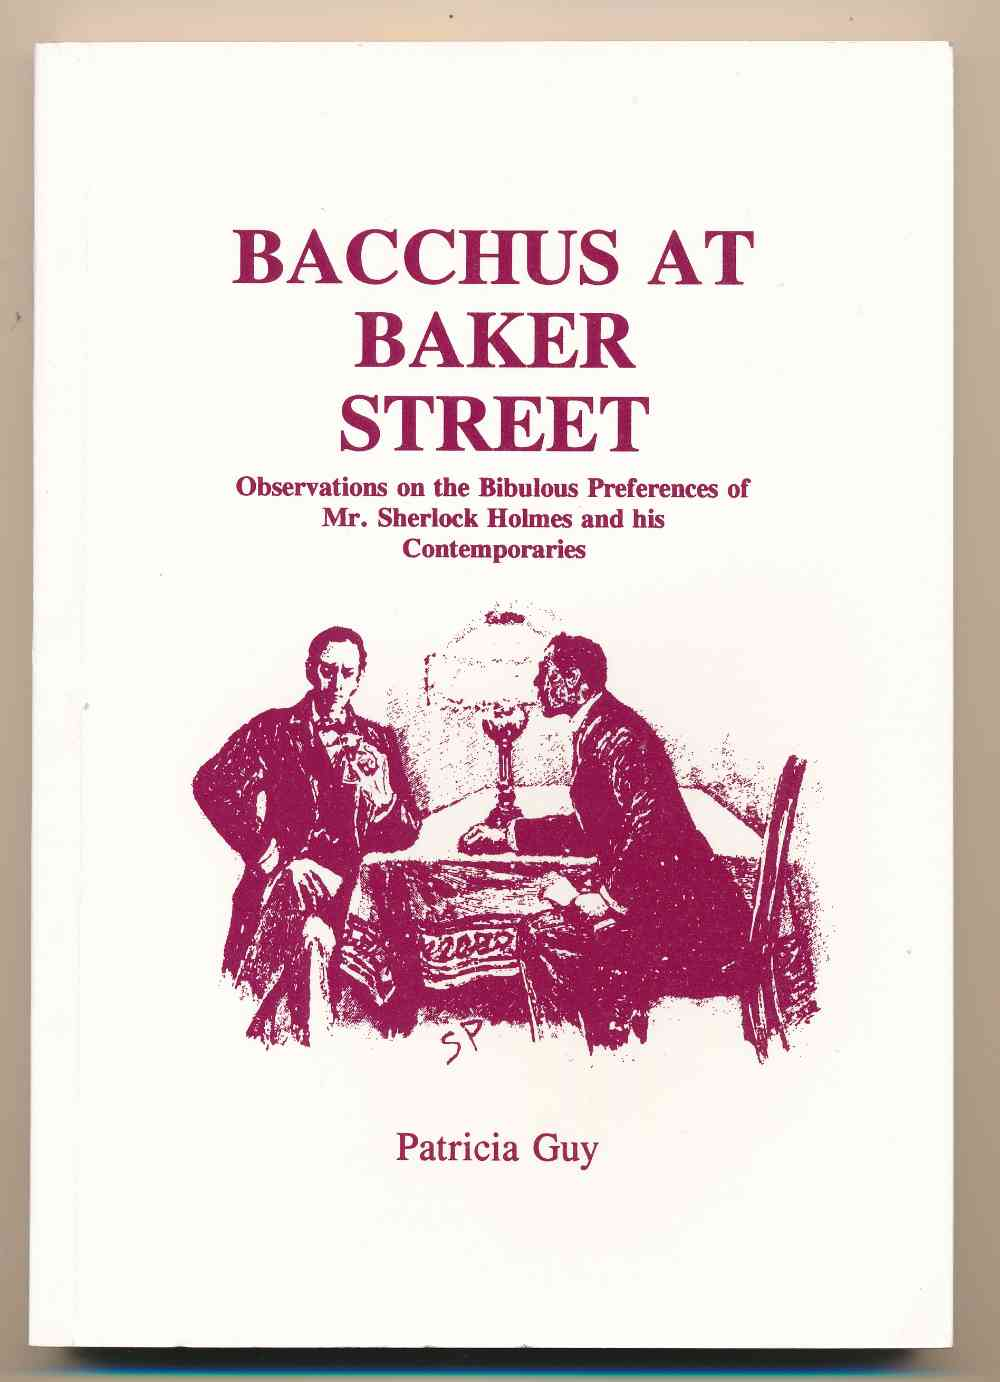 Bacchus at Baker Street : observations on the bibulous preferences of Mr. Sherlock Holmes and his contemporaries